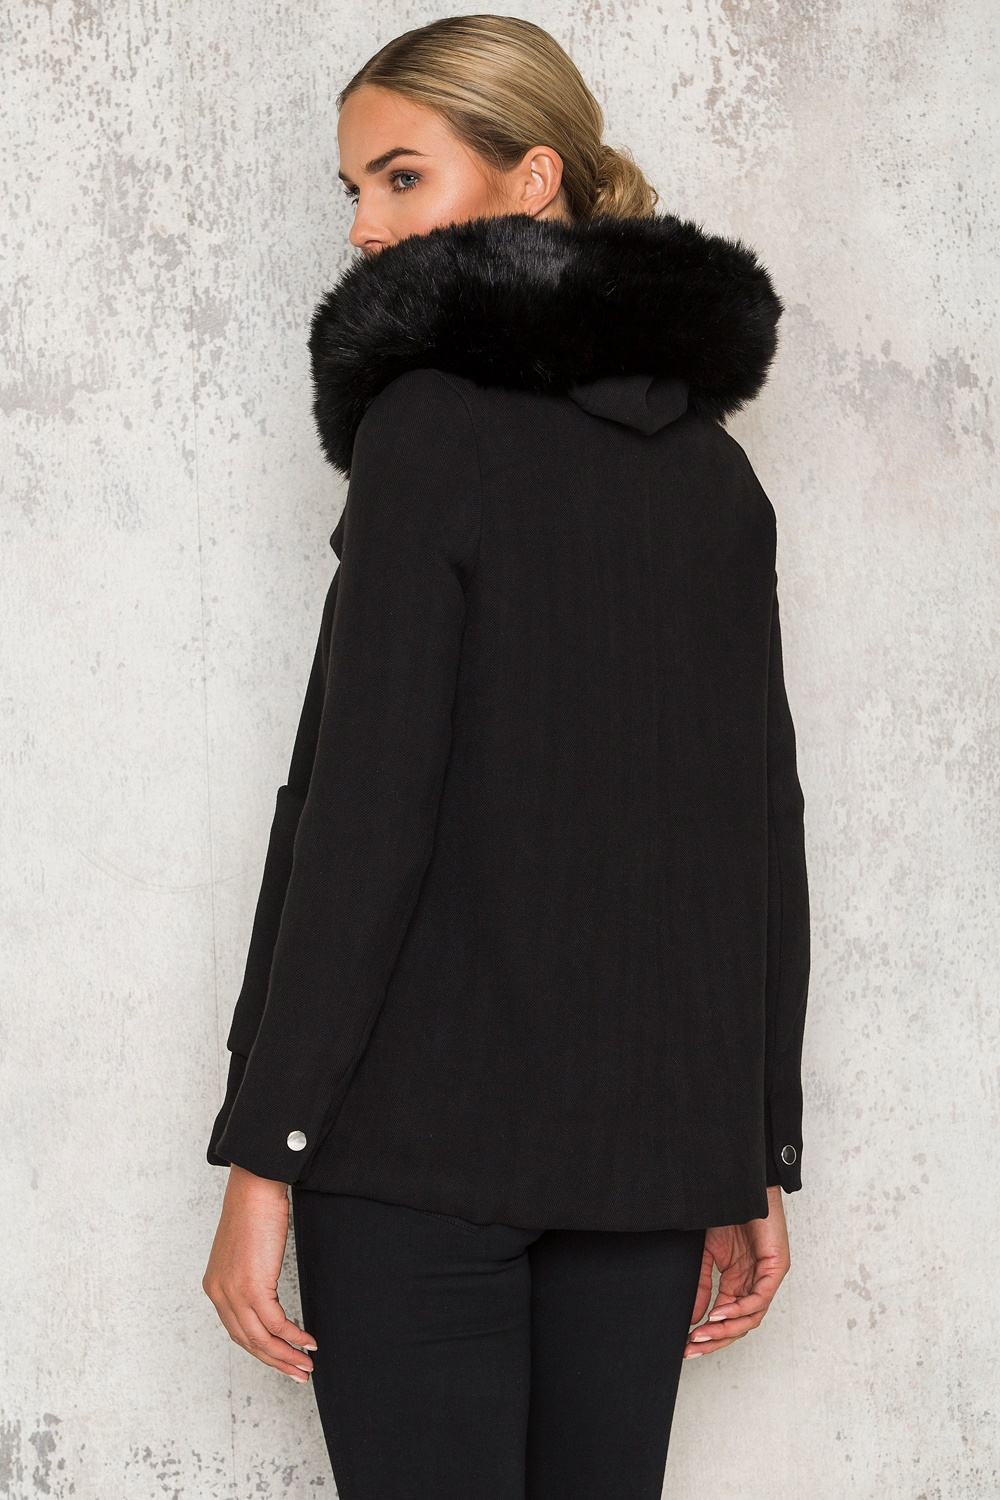 Willow Coat - Black